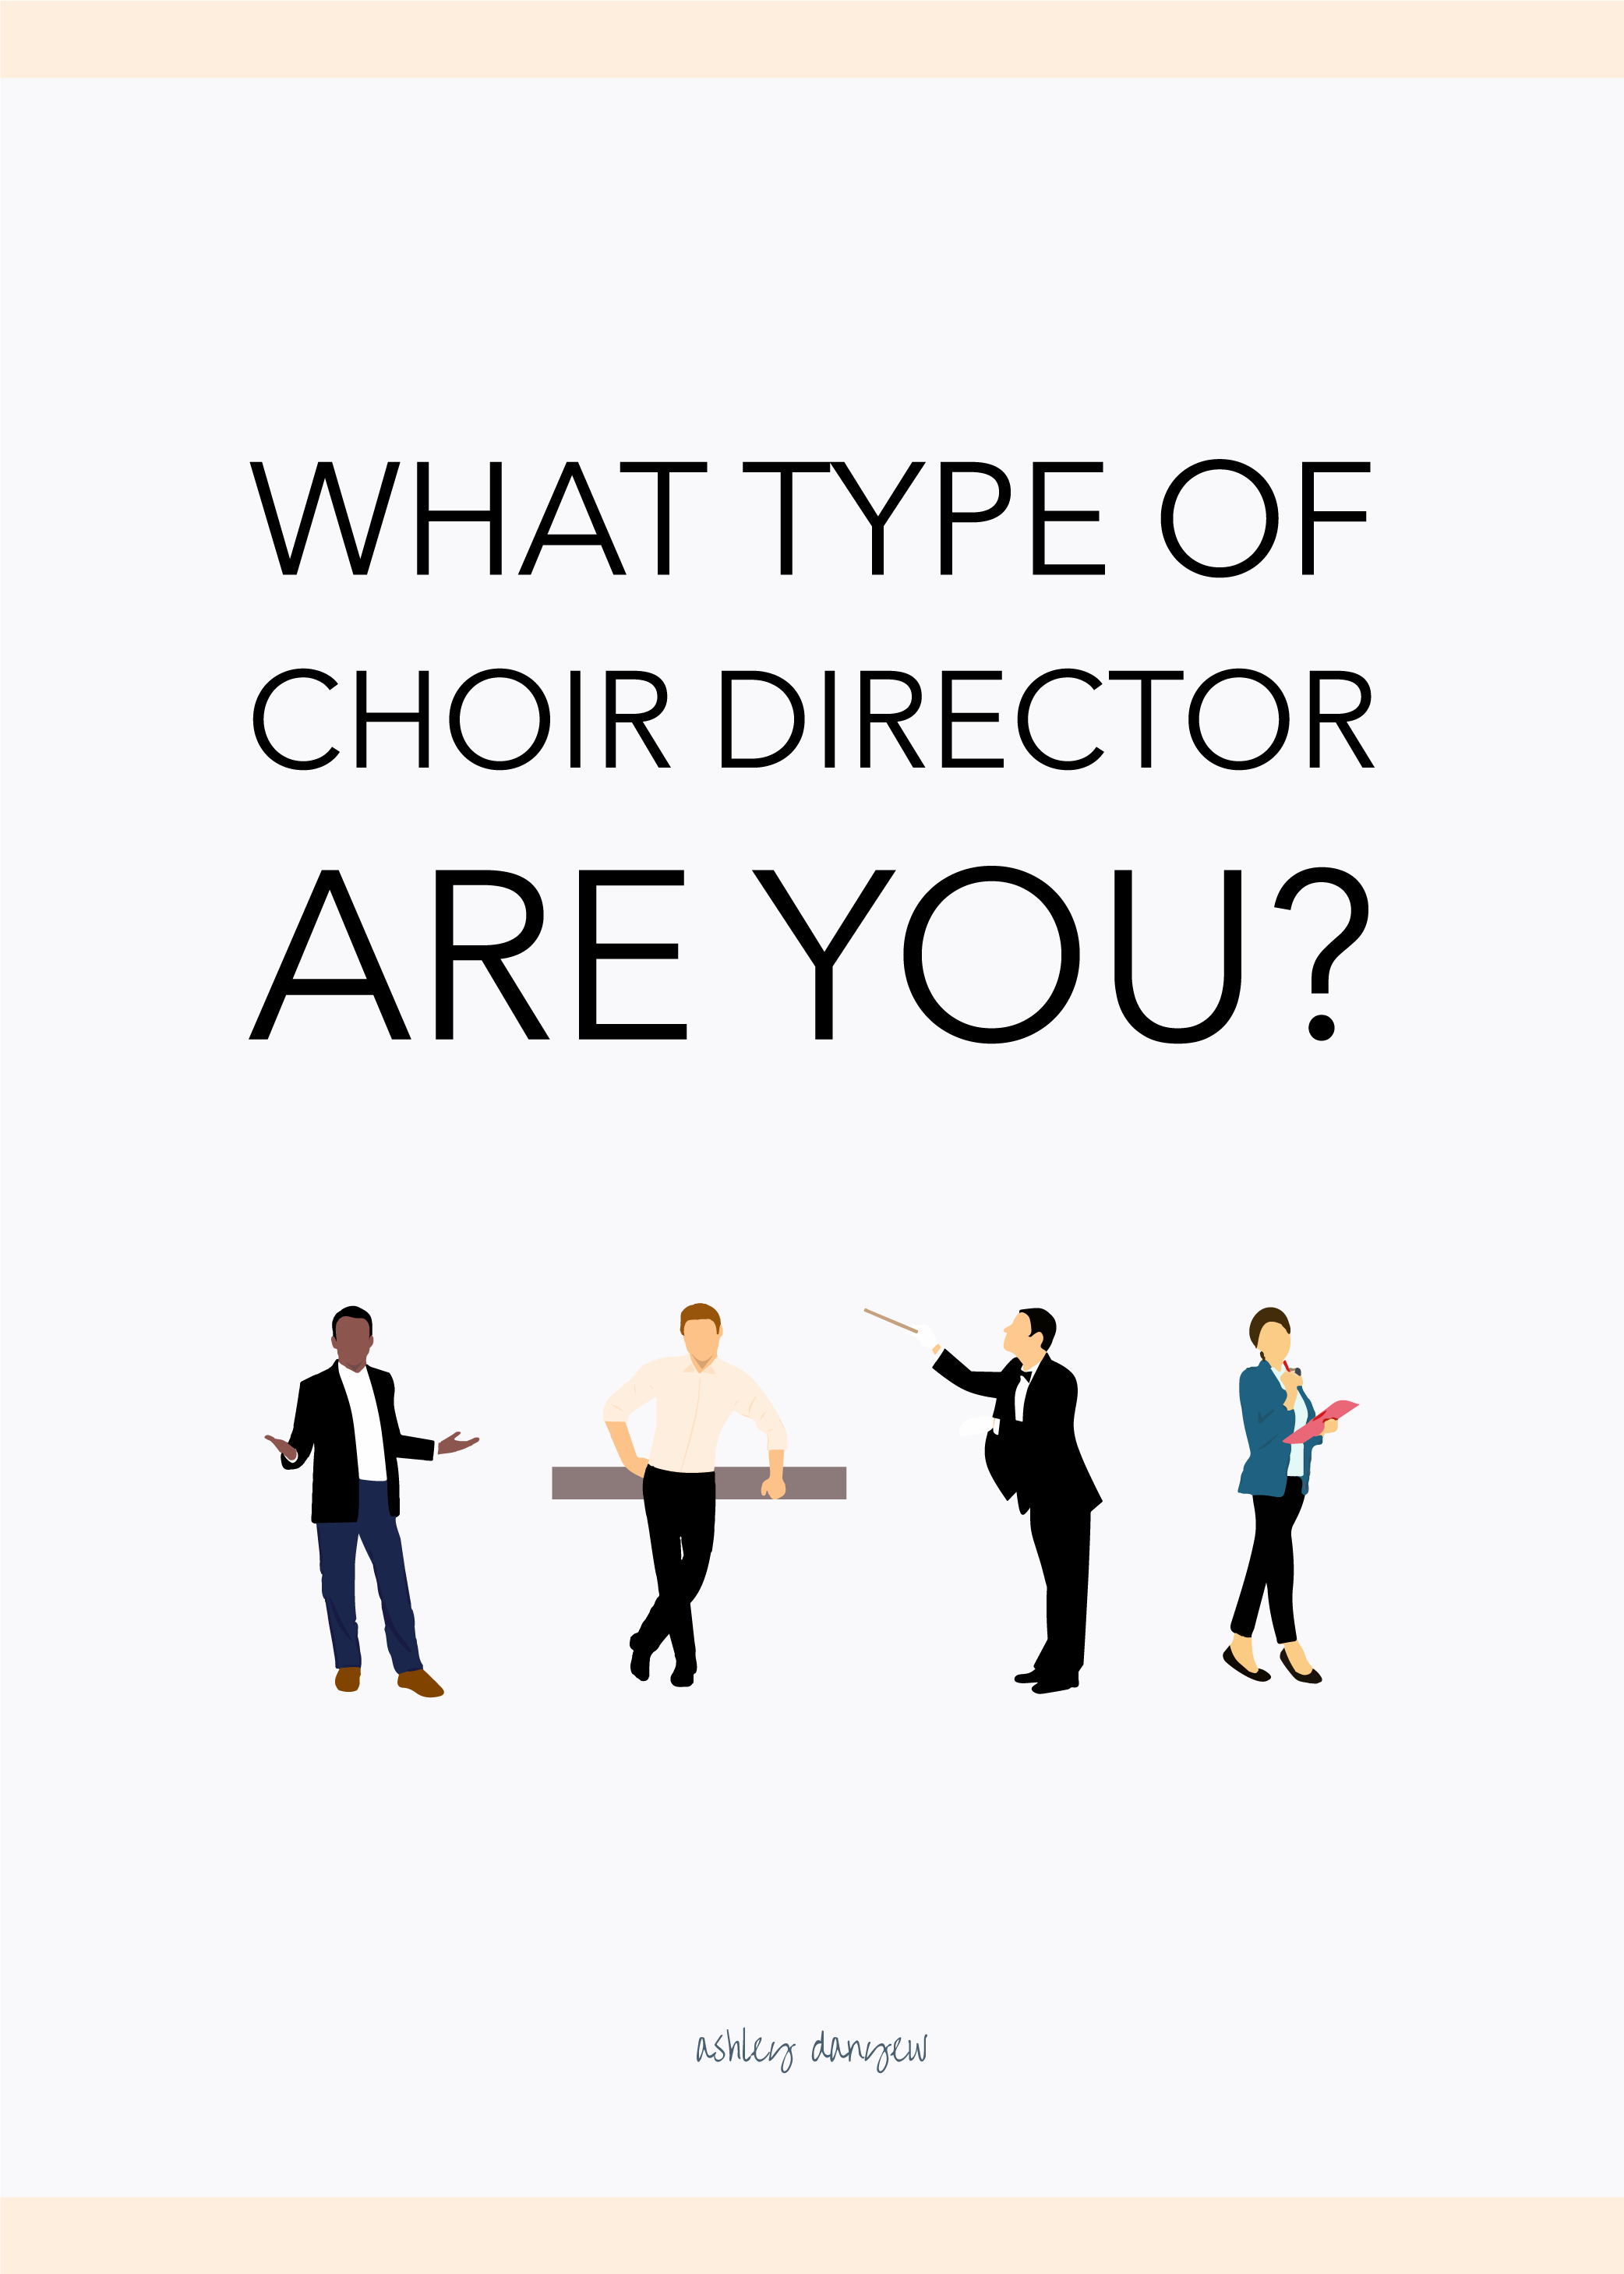 What Type of Choir Director Are You?